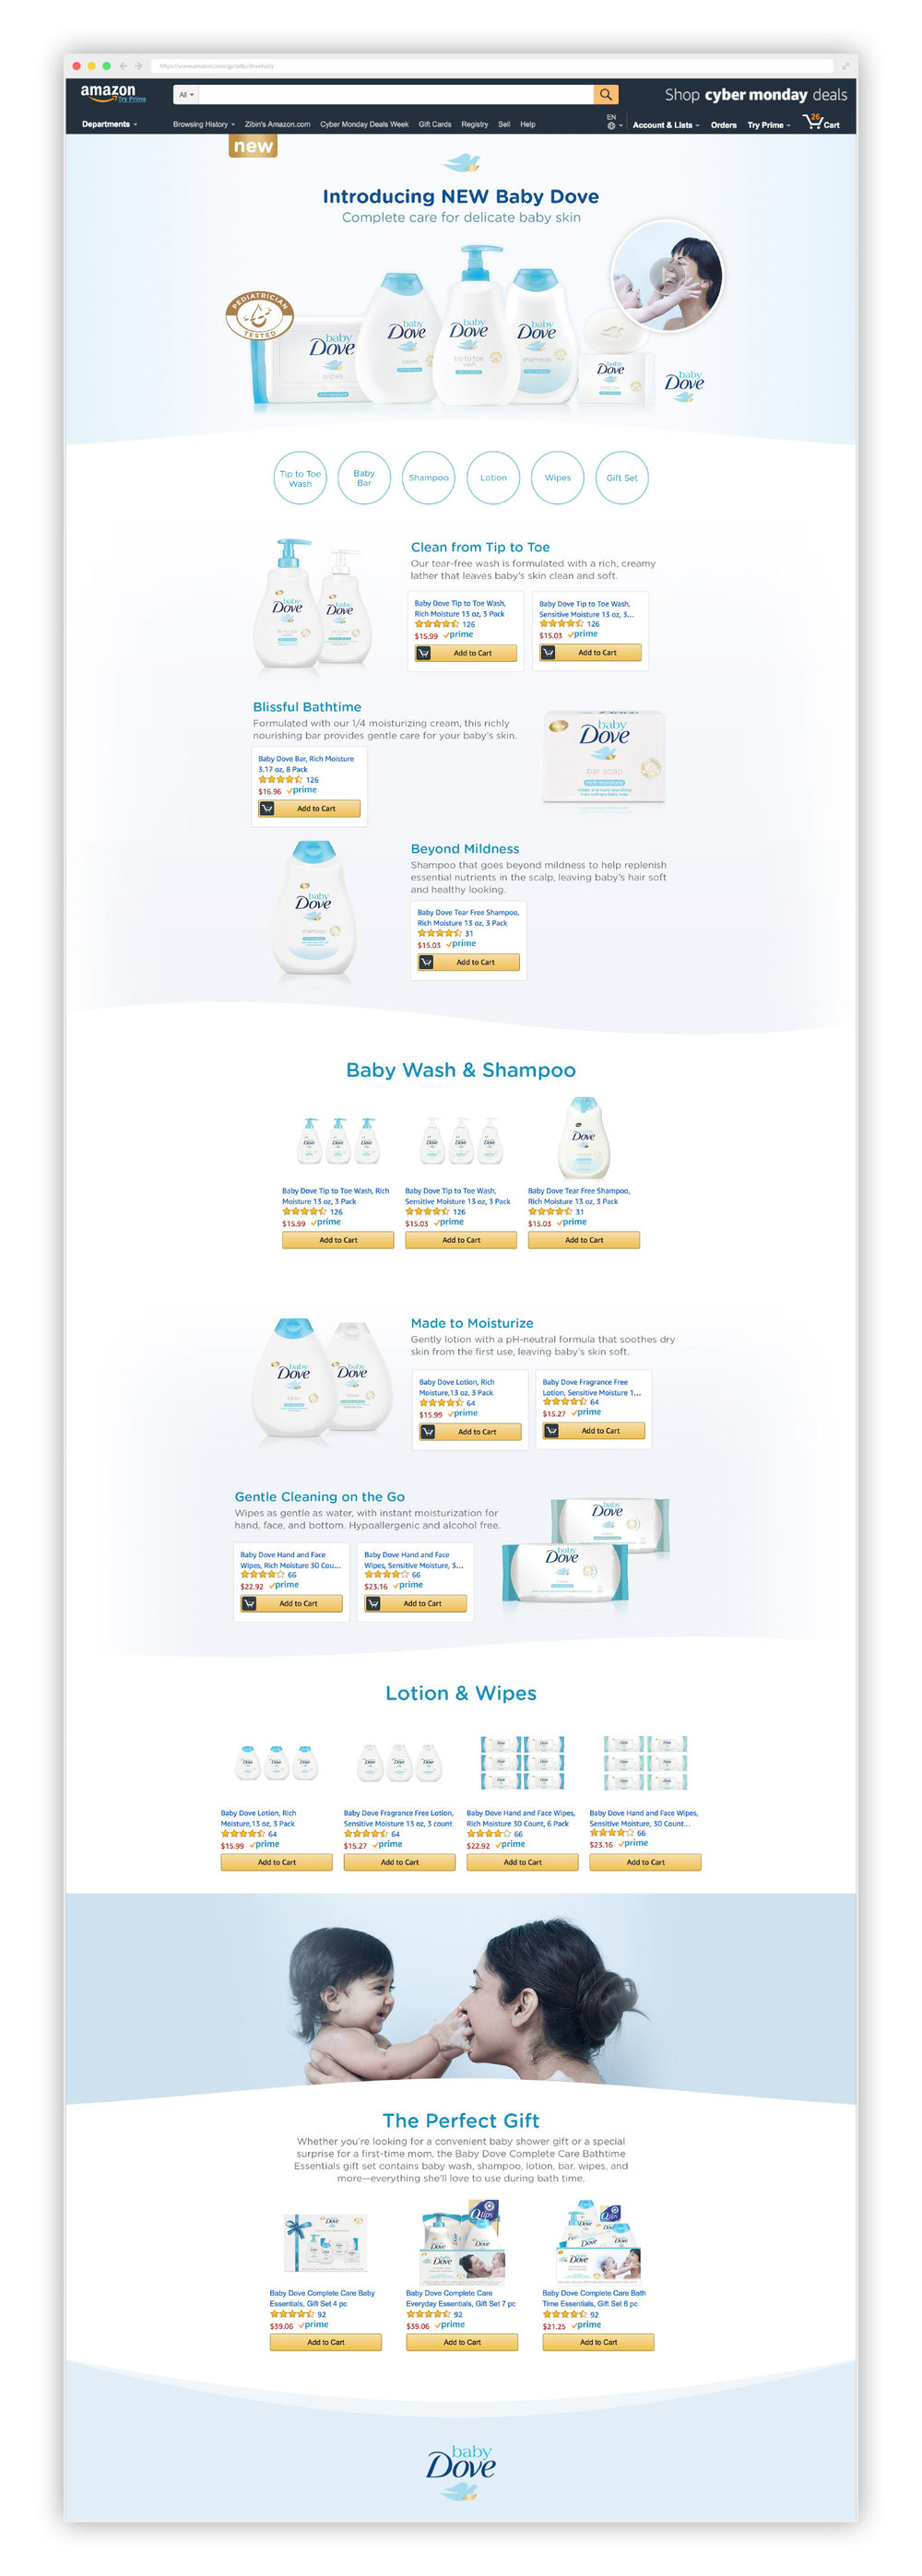 BabyDove Custom Campaign Landing Page, Digital, 3000px x8740 px